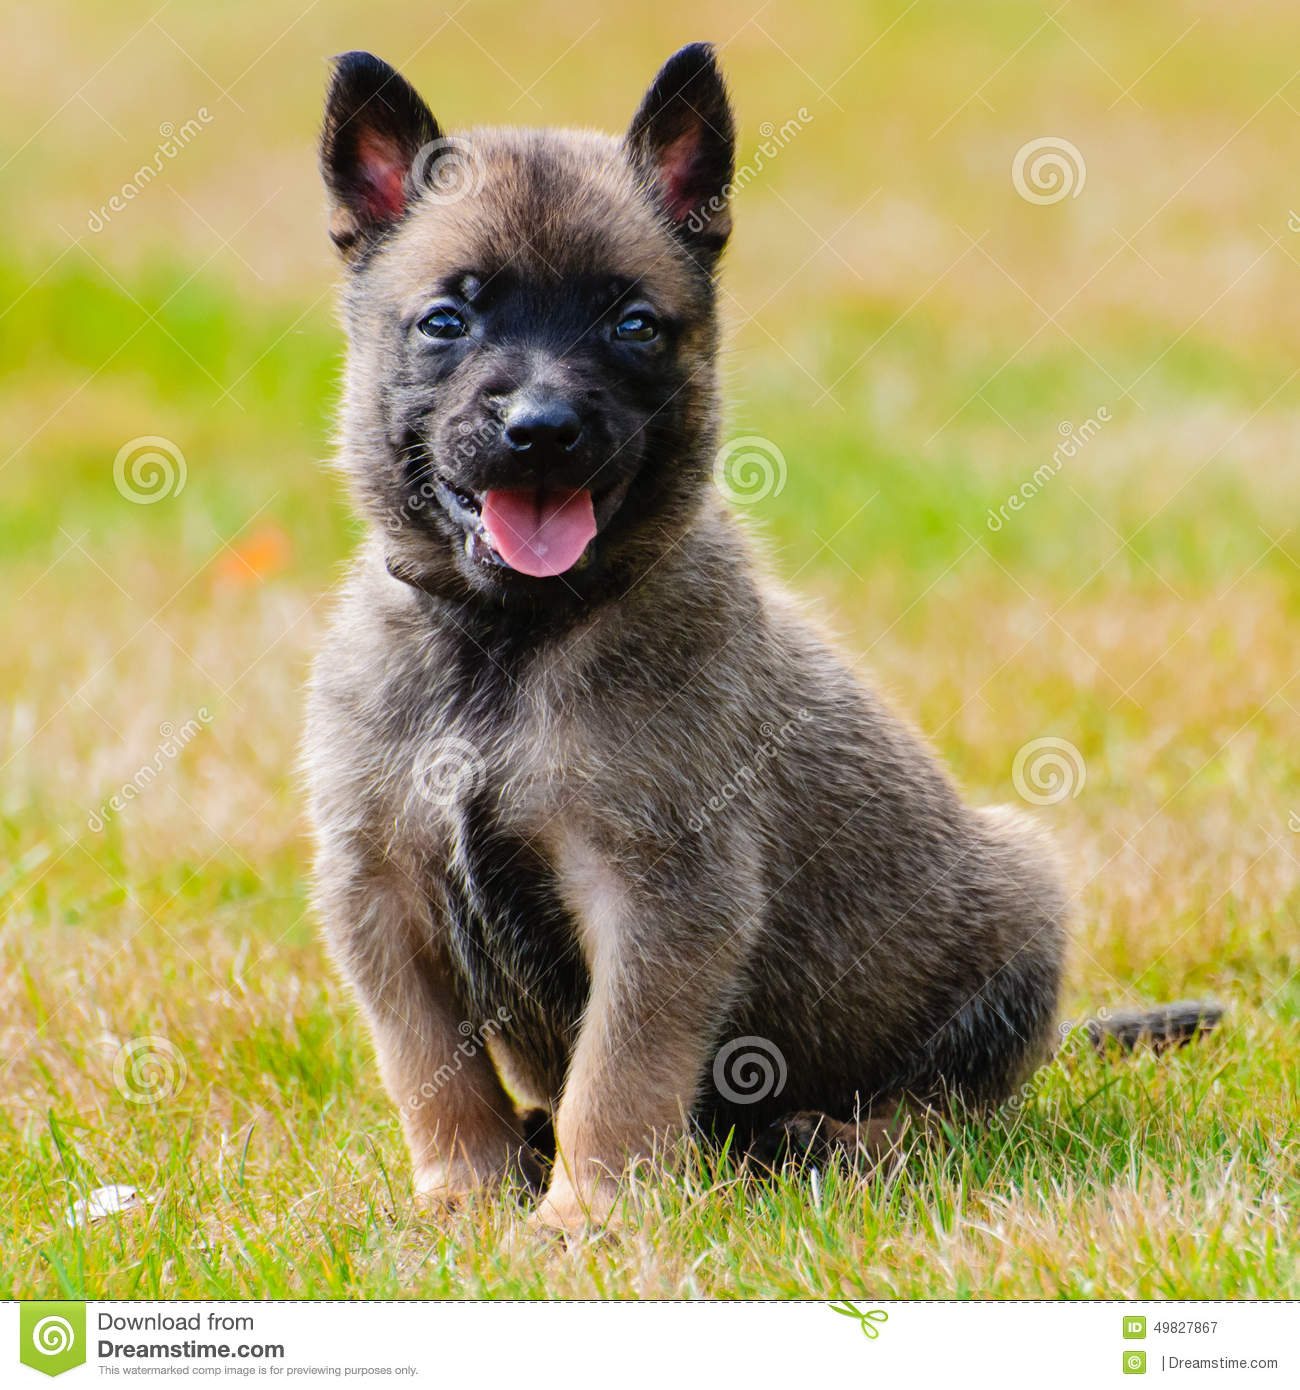 Chiot De Malinois Photo stock - Image: 49827867